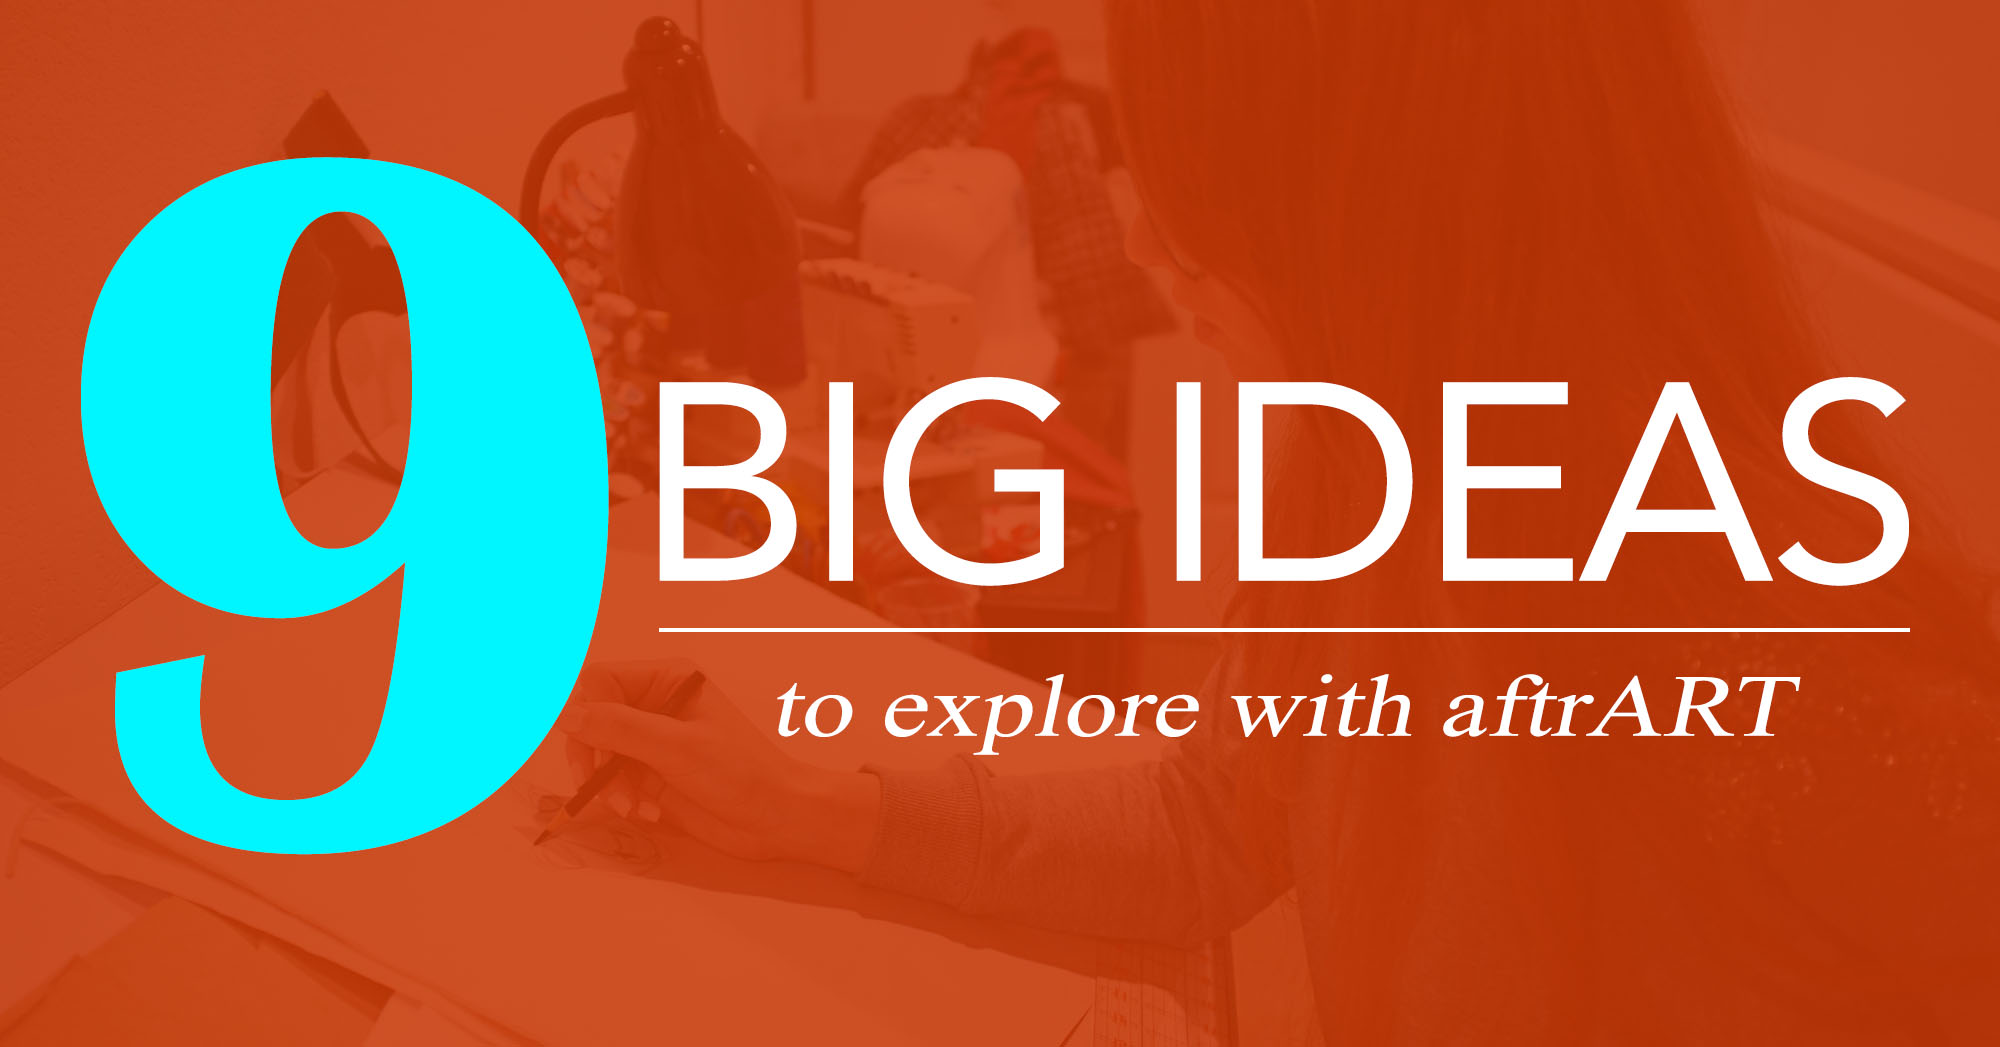 004_9-big-ideas_Social.jpg